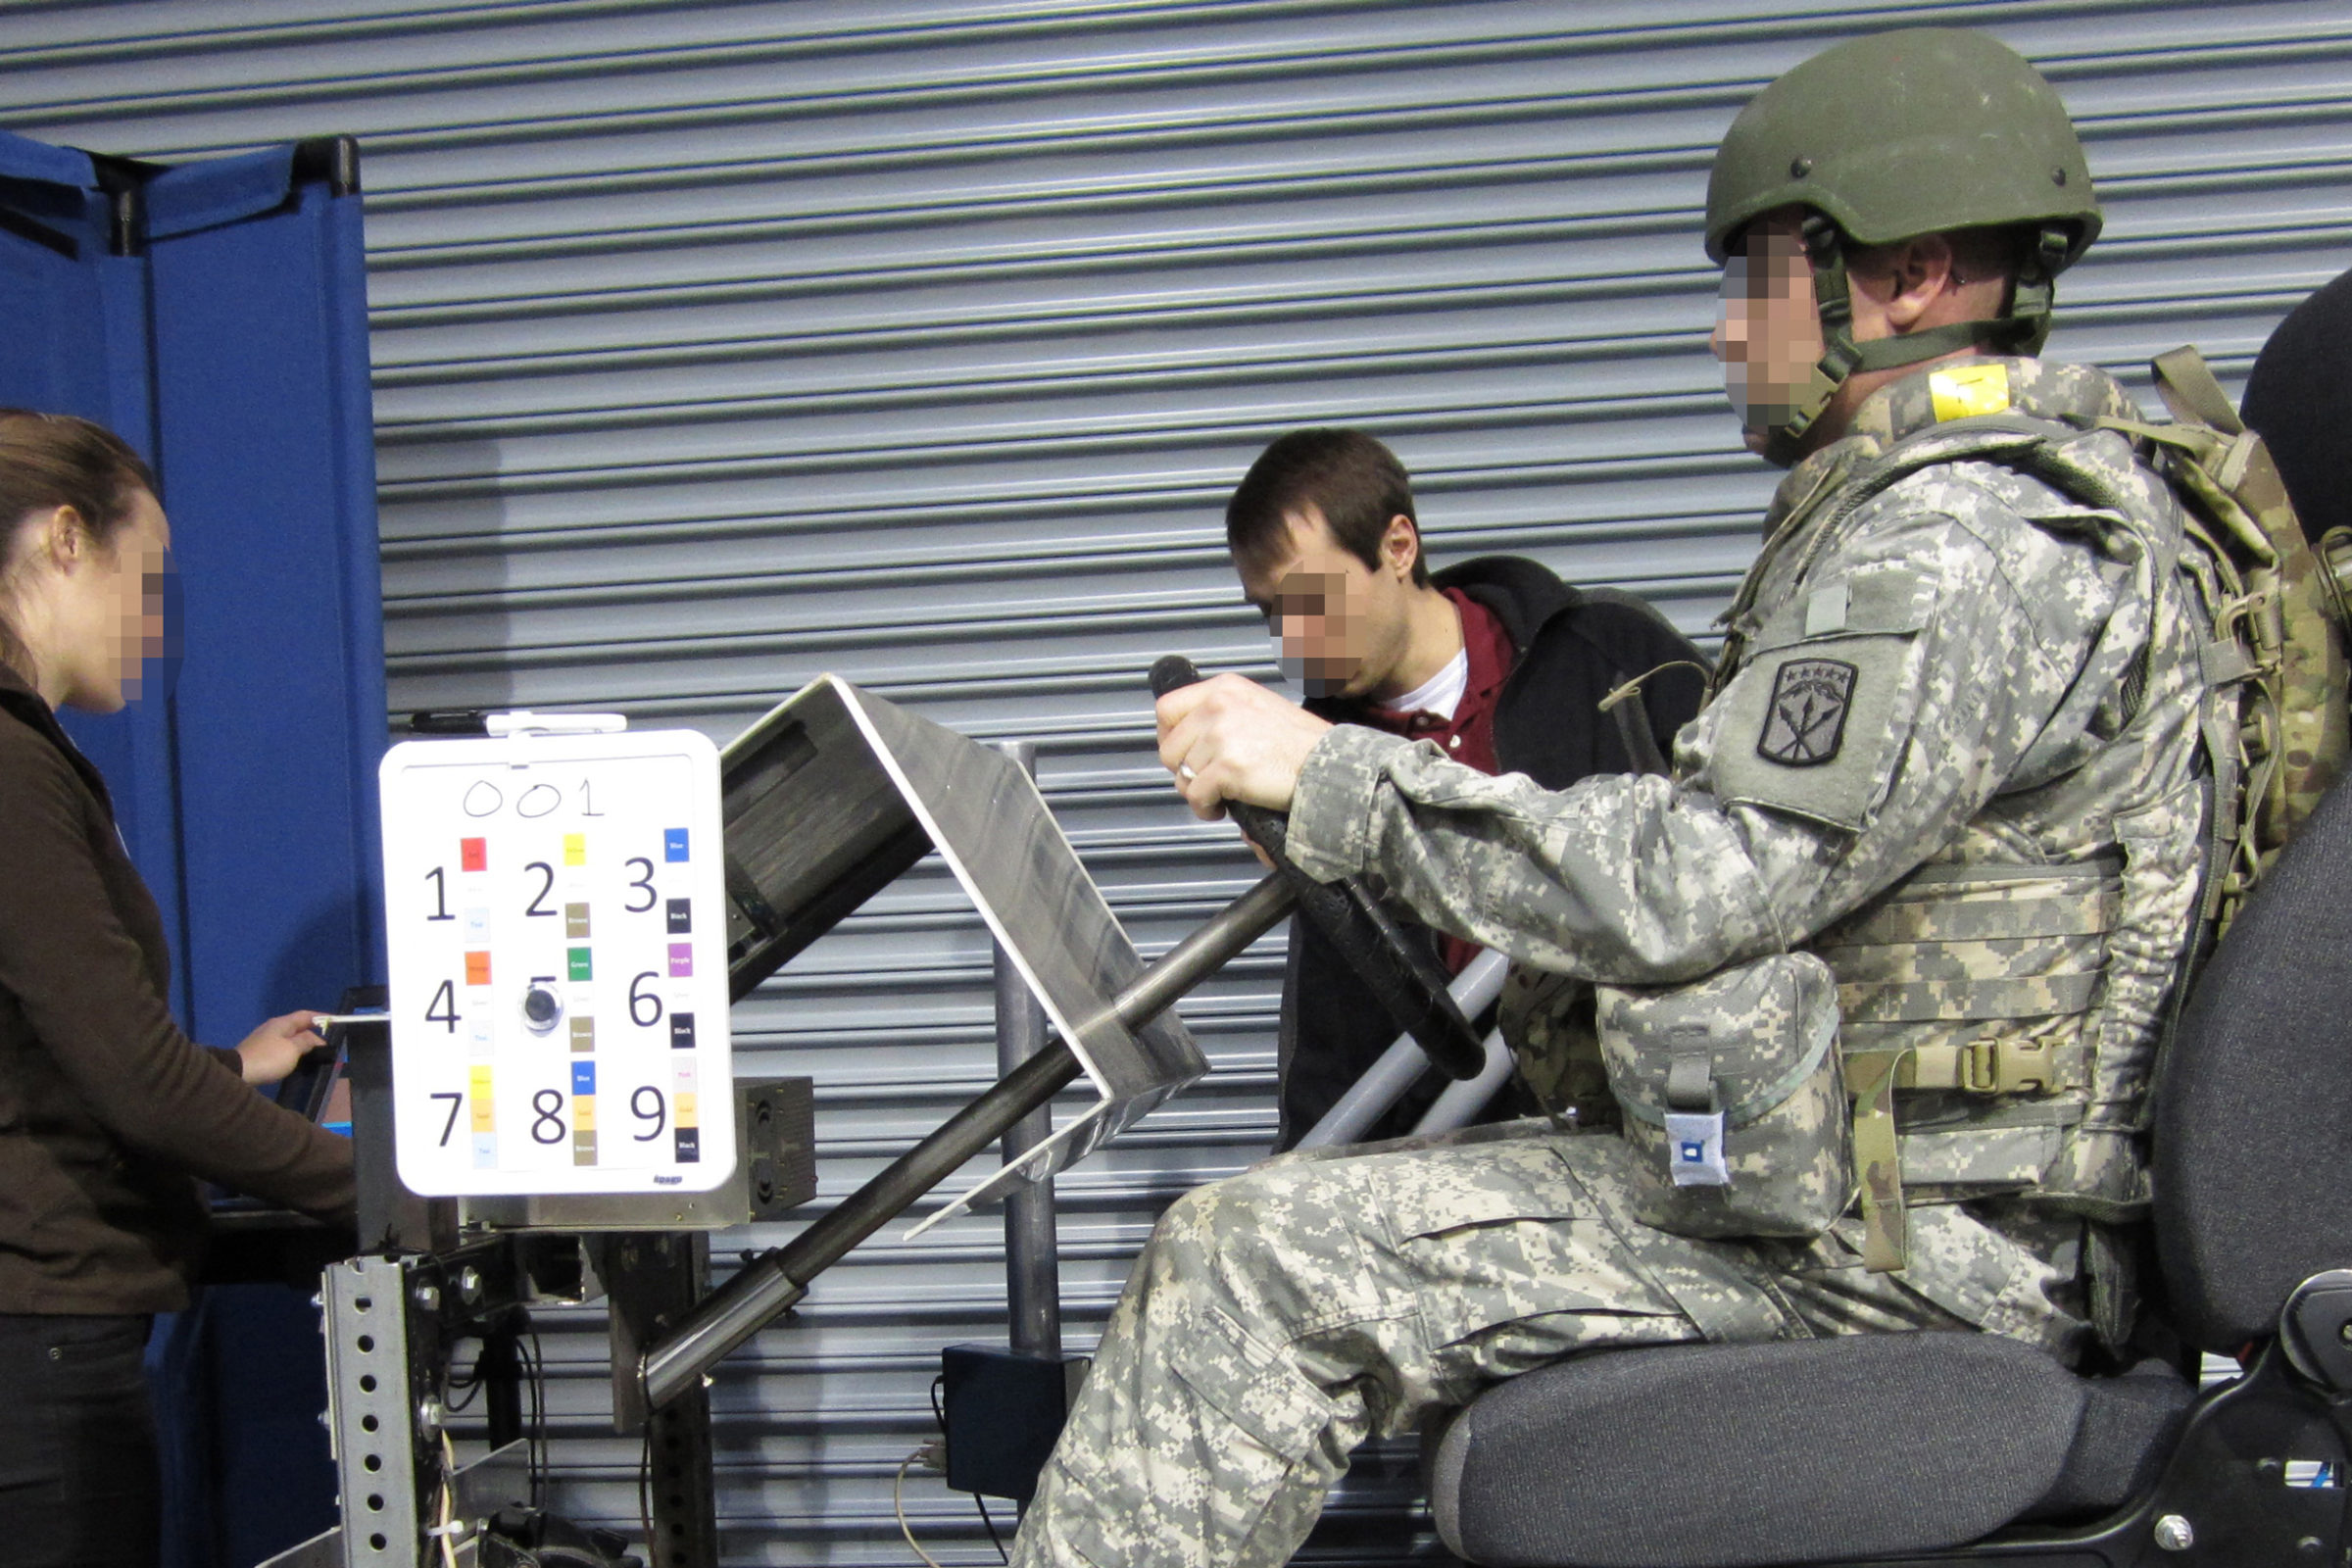 A person in a military uniform sits in a chair during the experiment